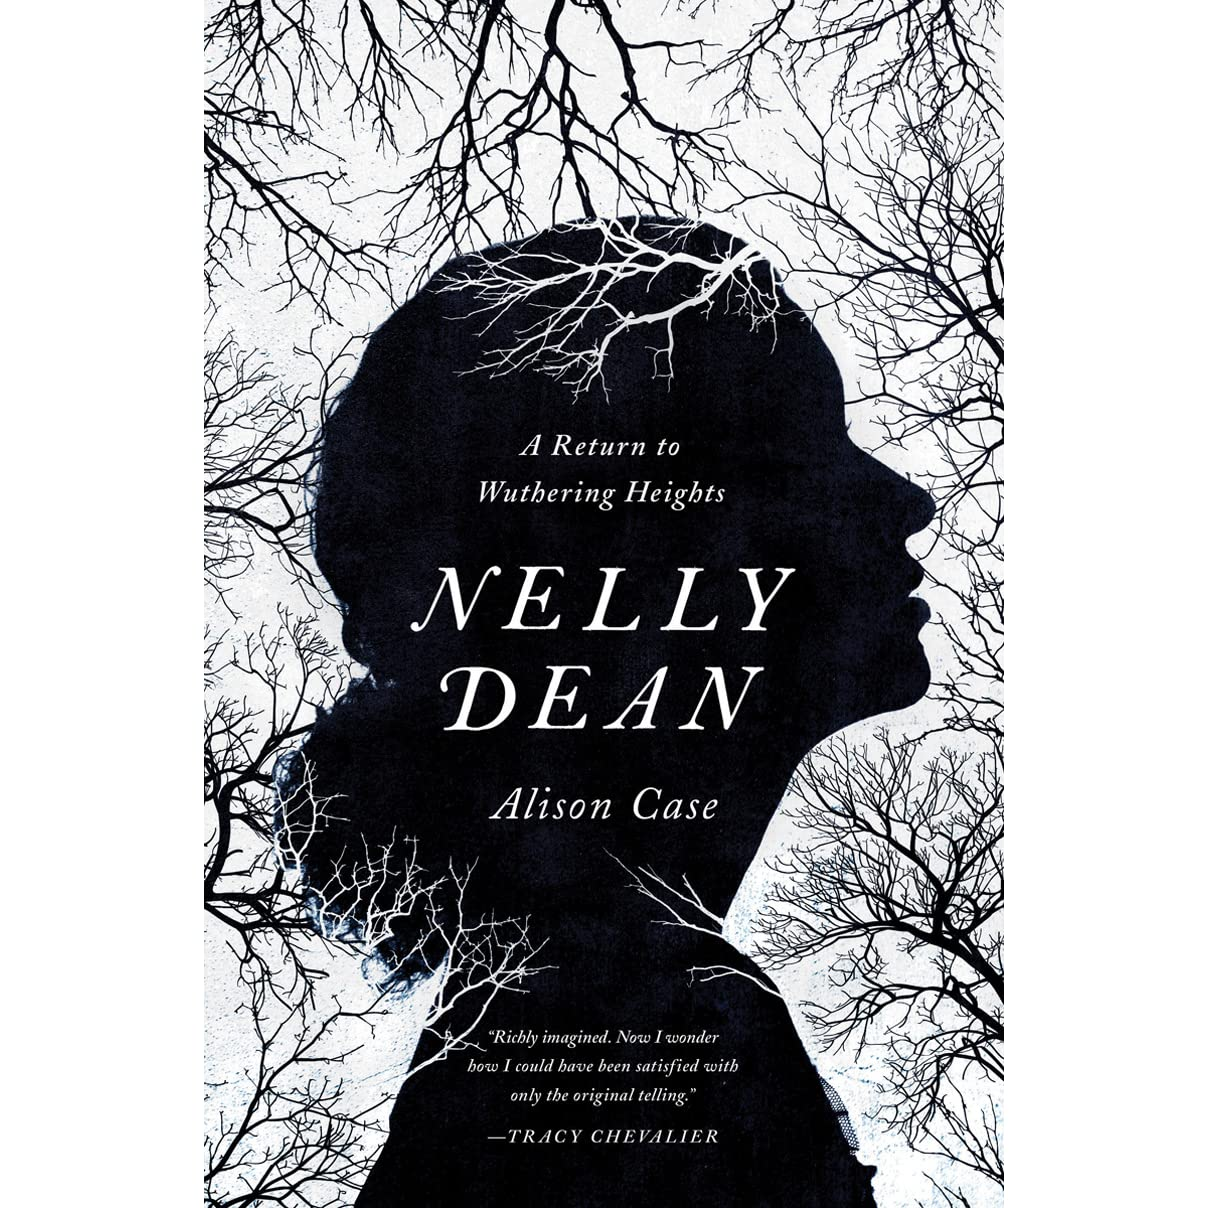 nelly dean a return to wuthering heights by alison case reviews nelly dean a return to wuthering heights by alison case reviews discussion bookclubs lists